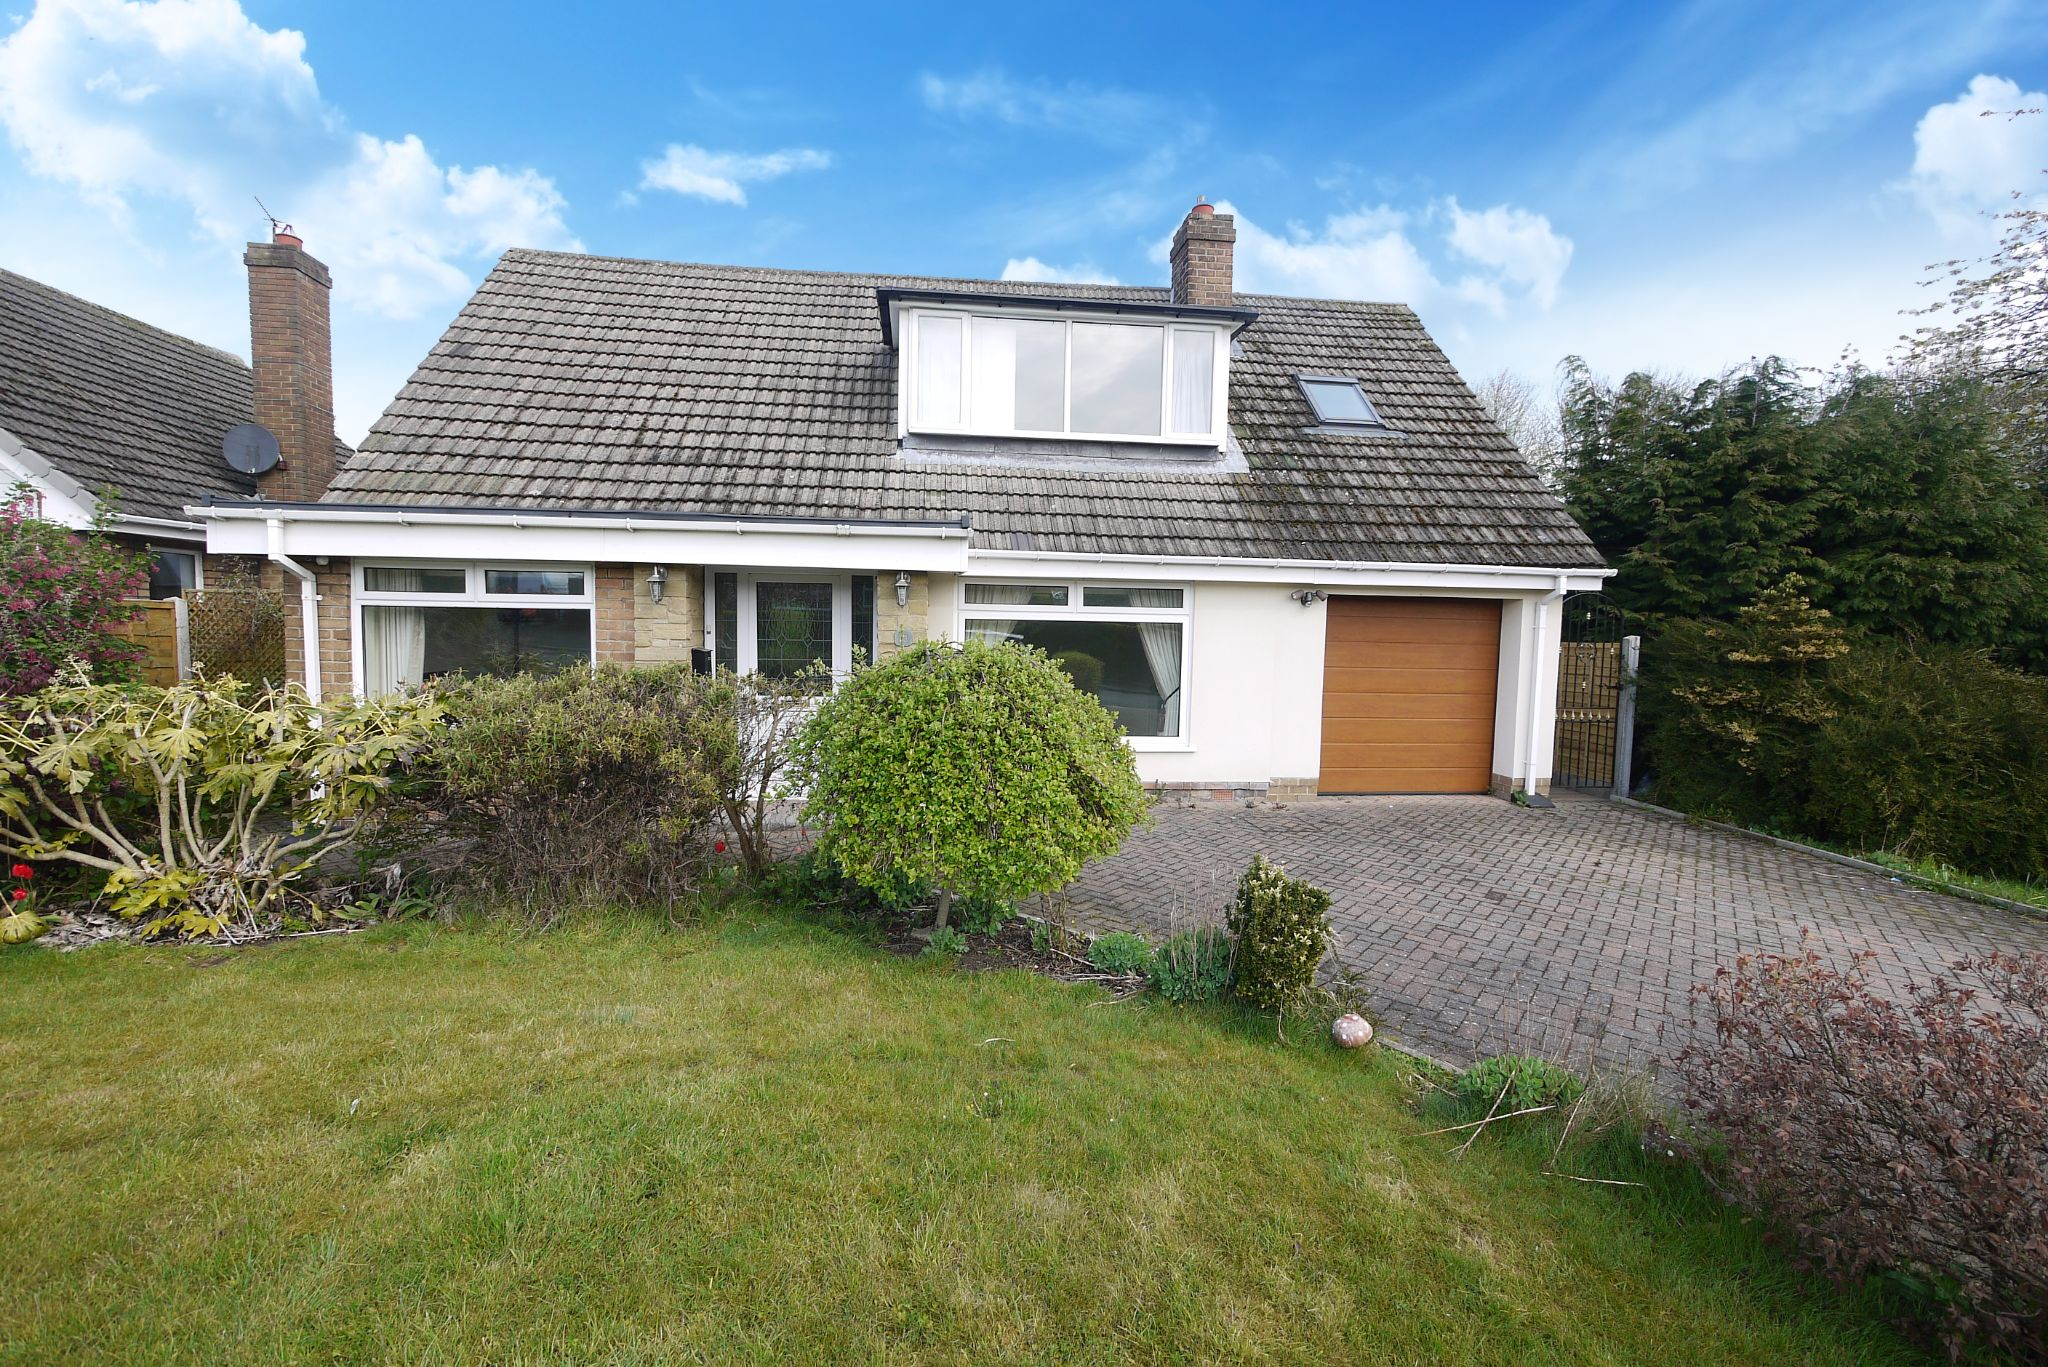 3 bedroom detached house For Sale in Brighouse - Photograph 1.